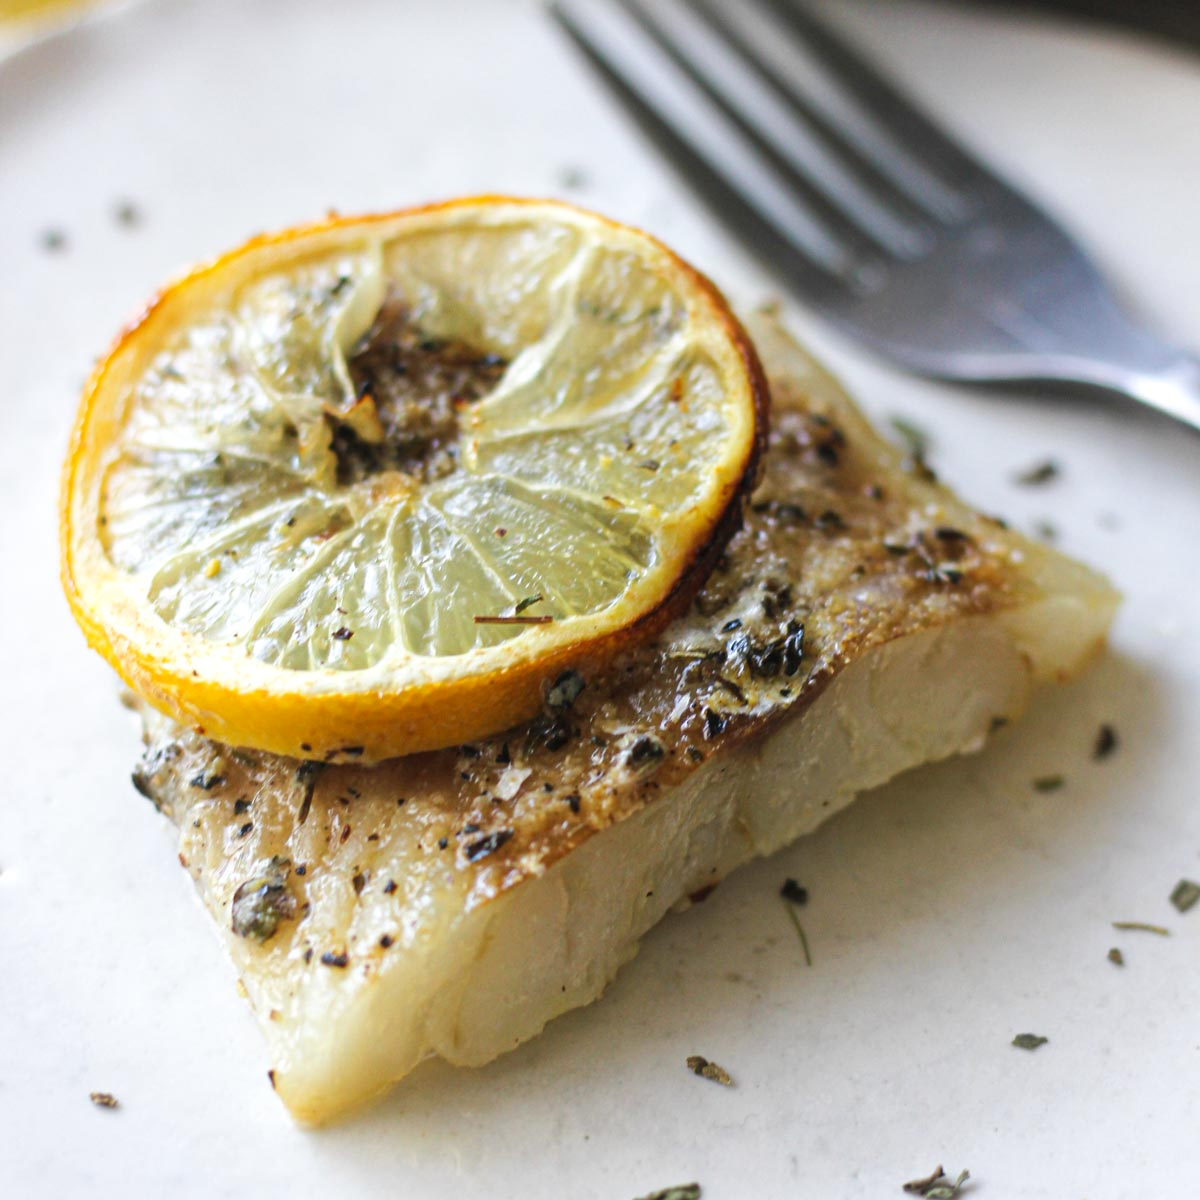 close shot of a cooked cod fillet with a lemon slice on top